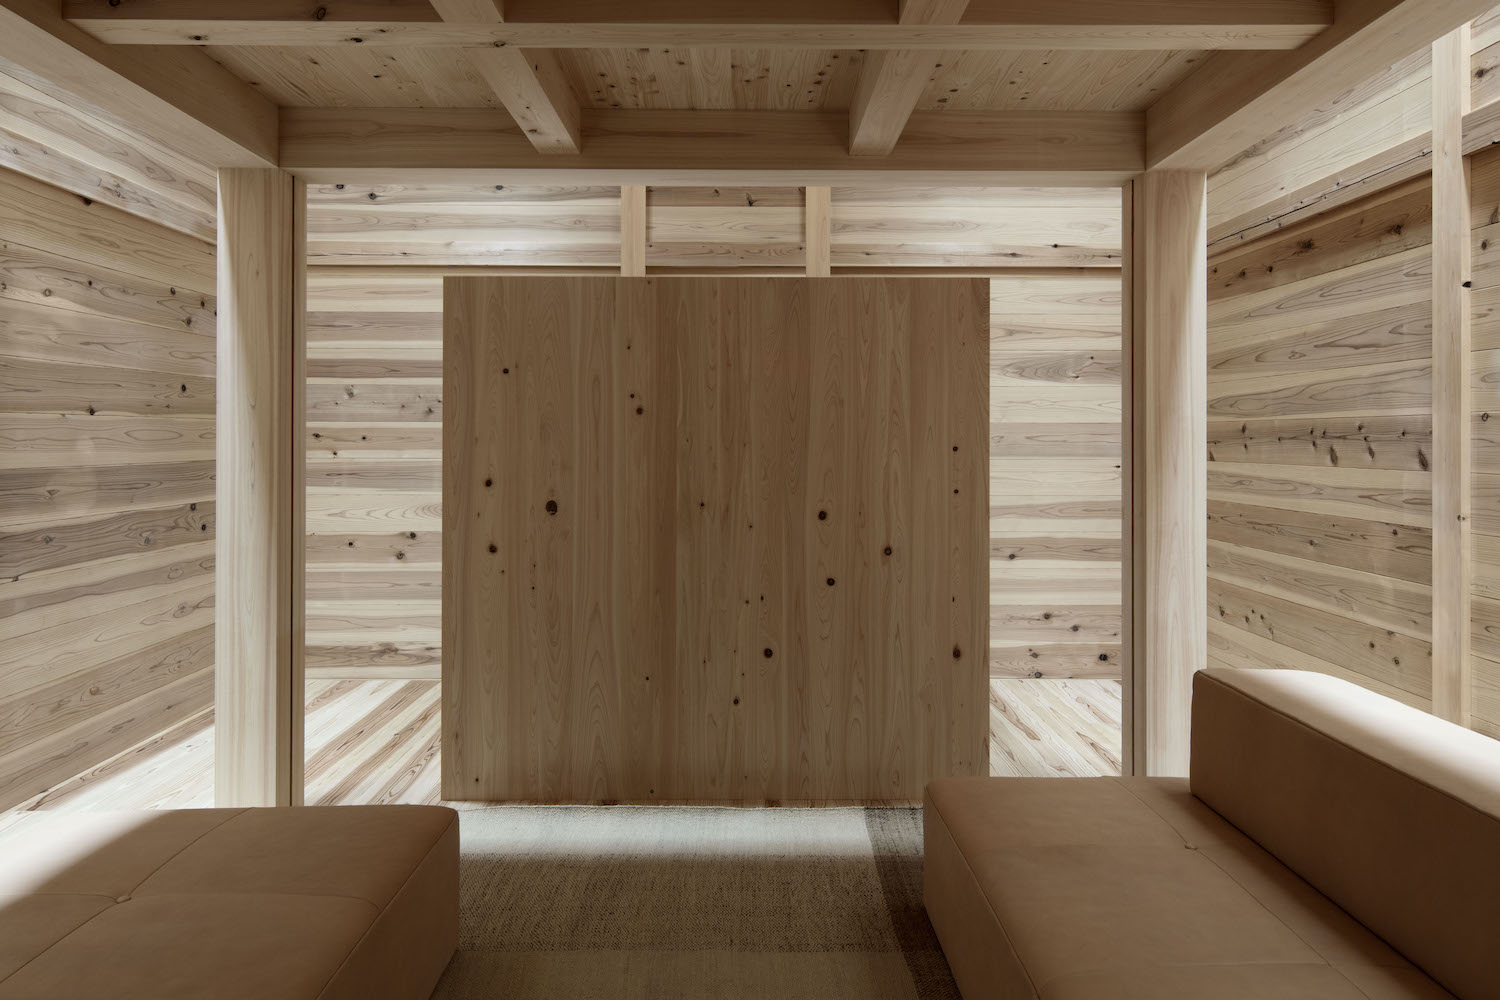 wooden furniture in a wooden room